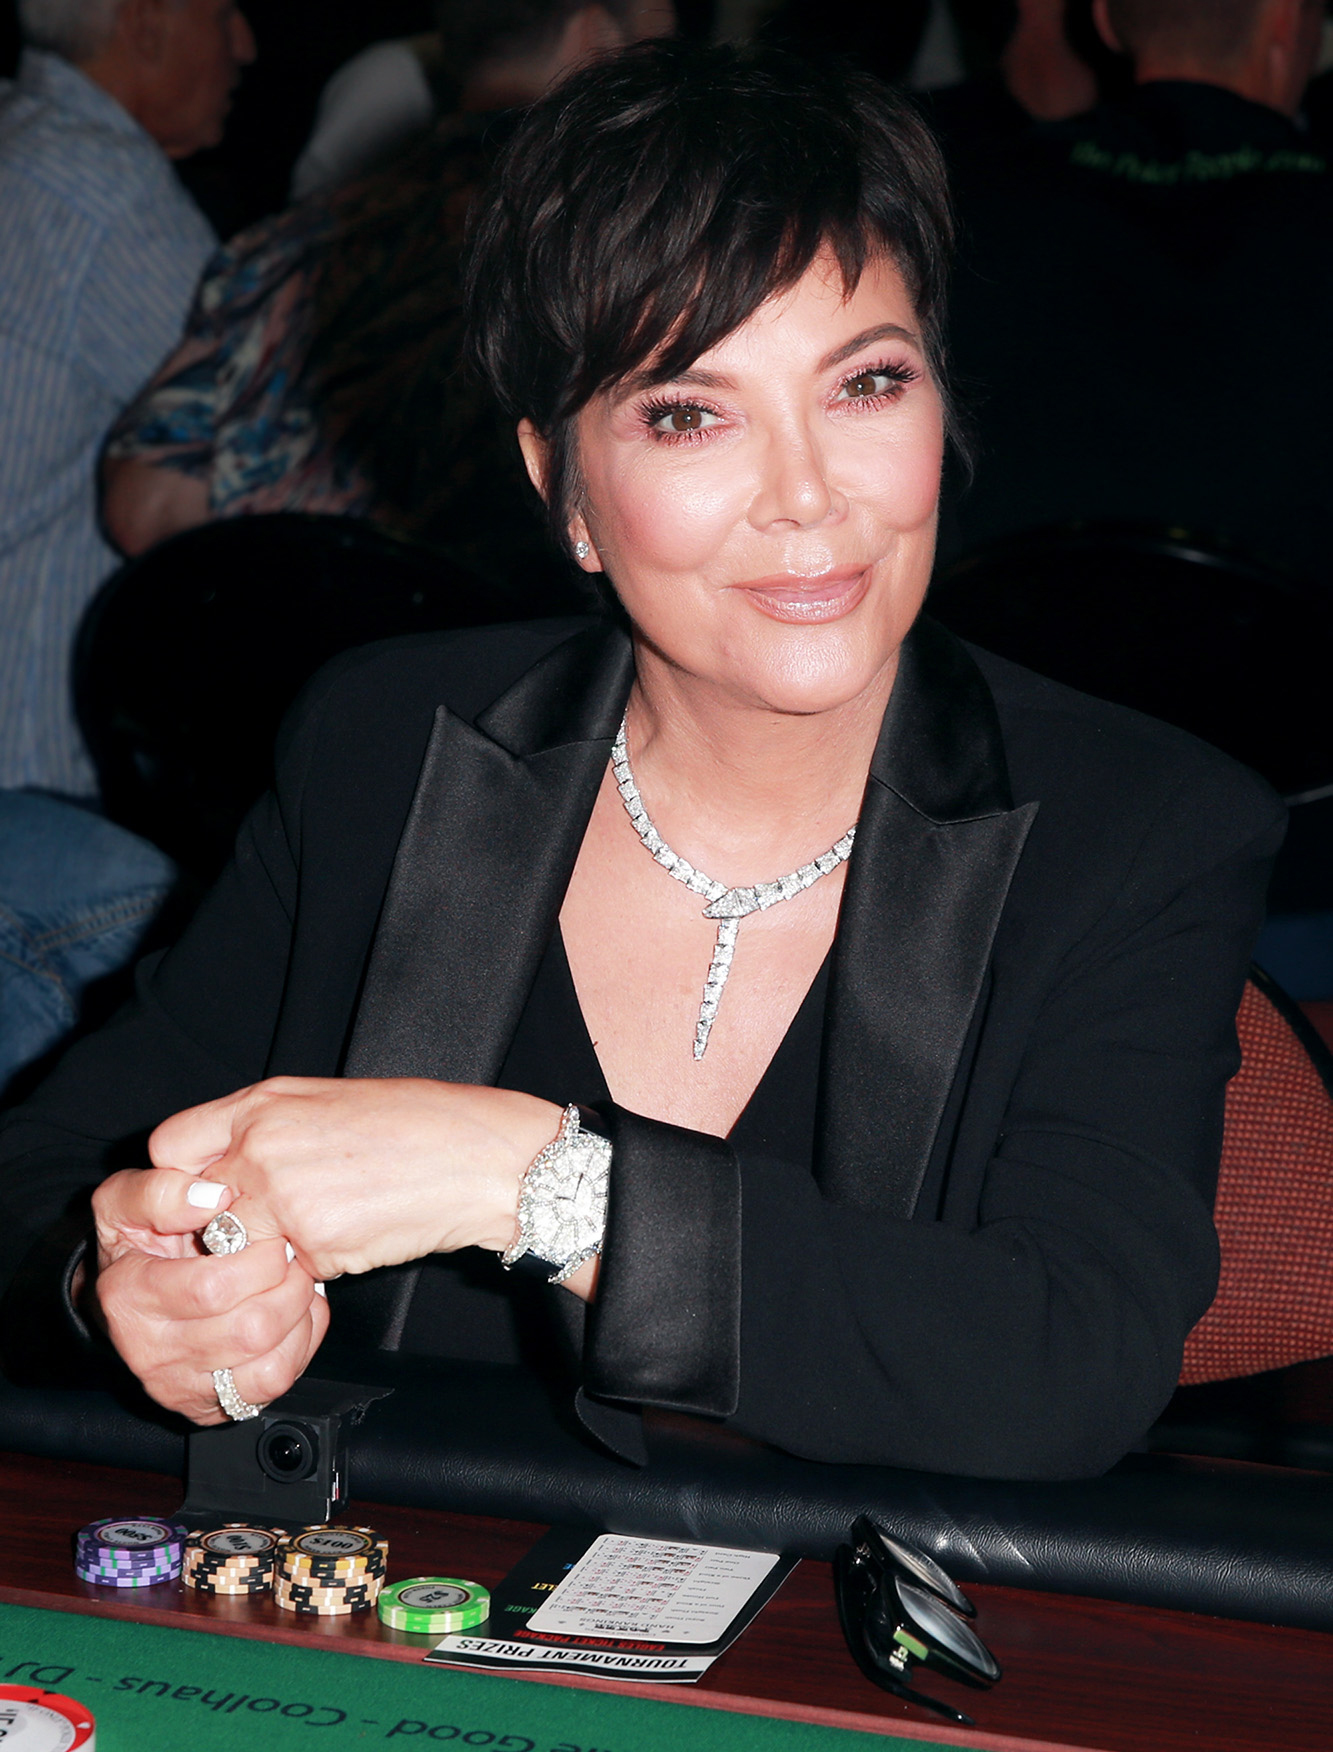 Sasha Chris Badkamer Kris Jenner Has An Amazing Connection With Grandson Mason Disick